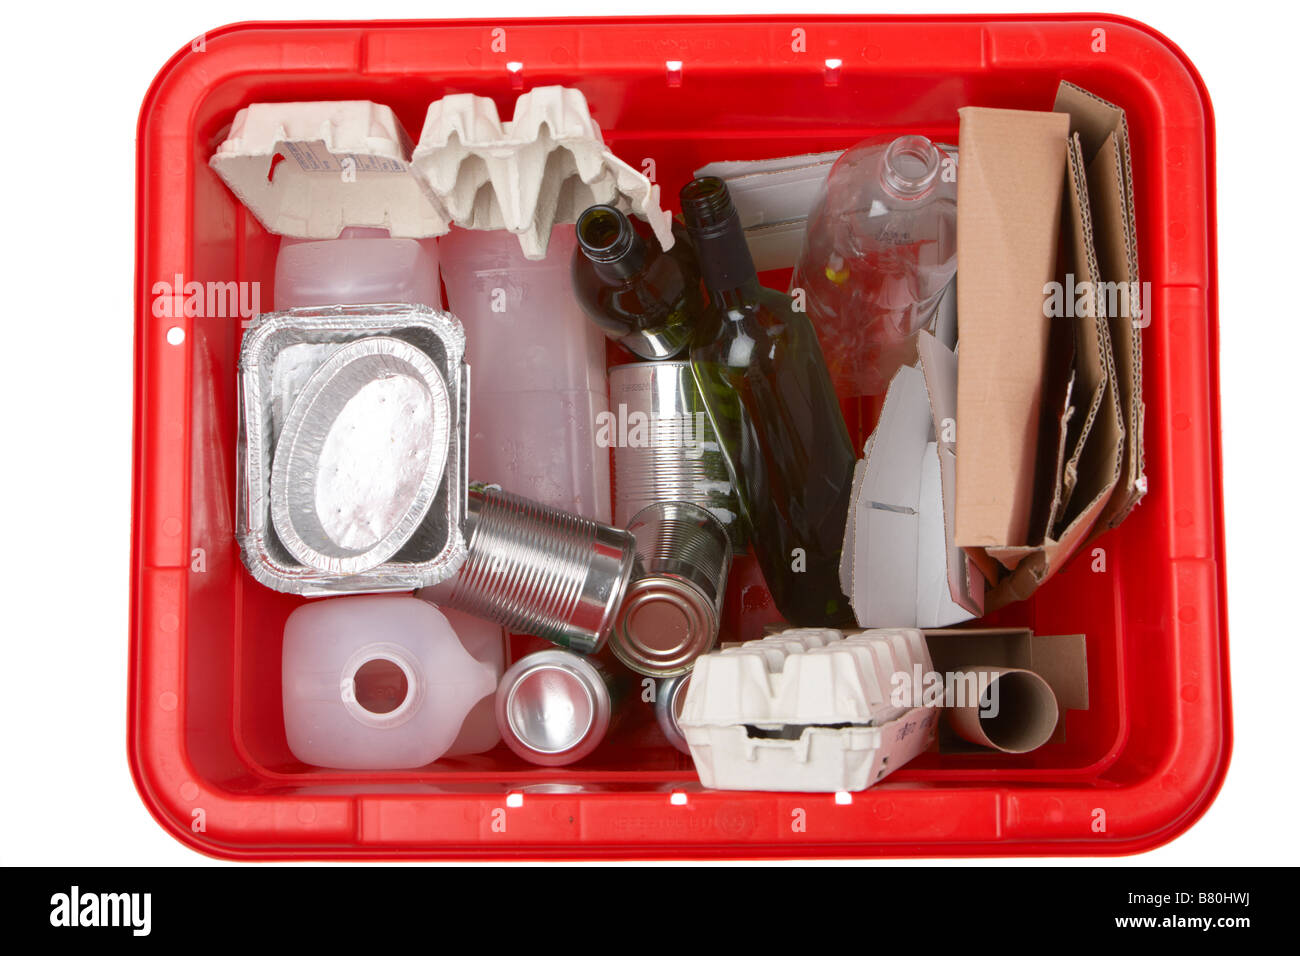 various items of household waste placed in a kerbie kerbside collection bin for recycling including aluminium food - Stock Image